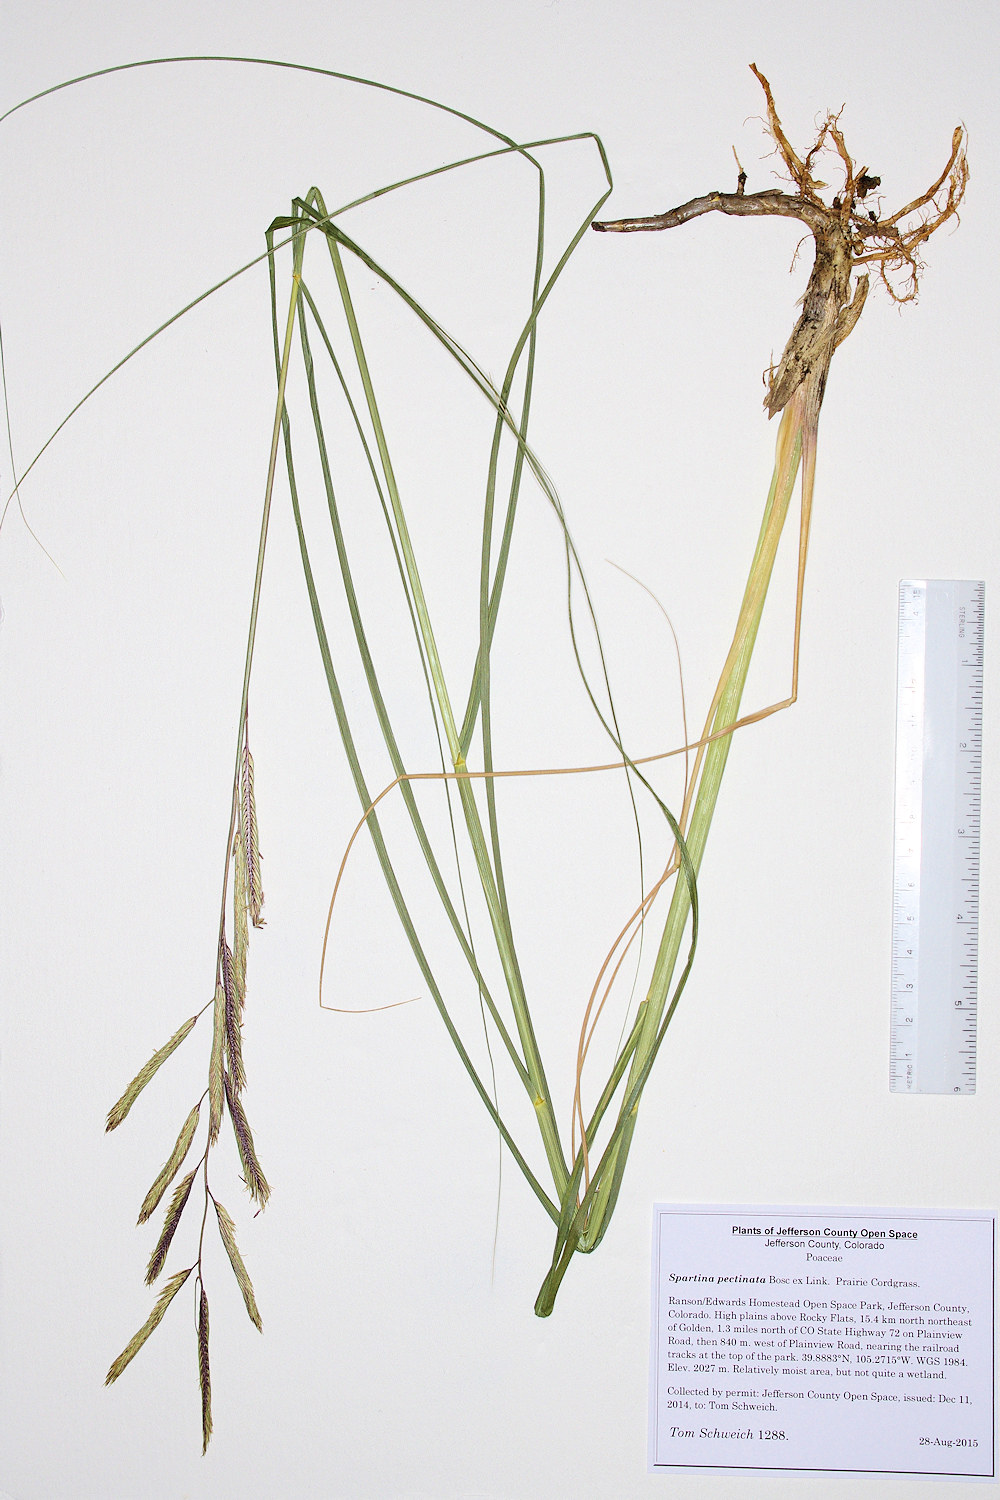 Poaceae Spartina pectinata